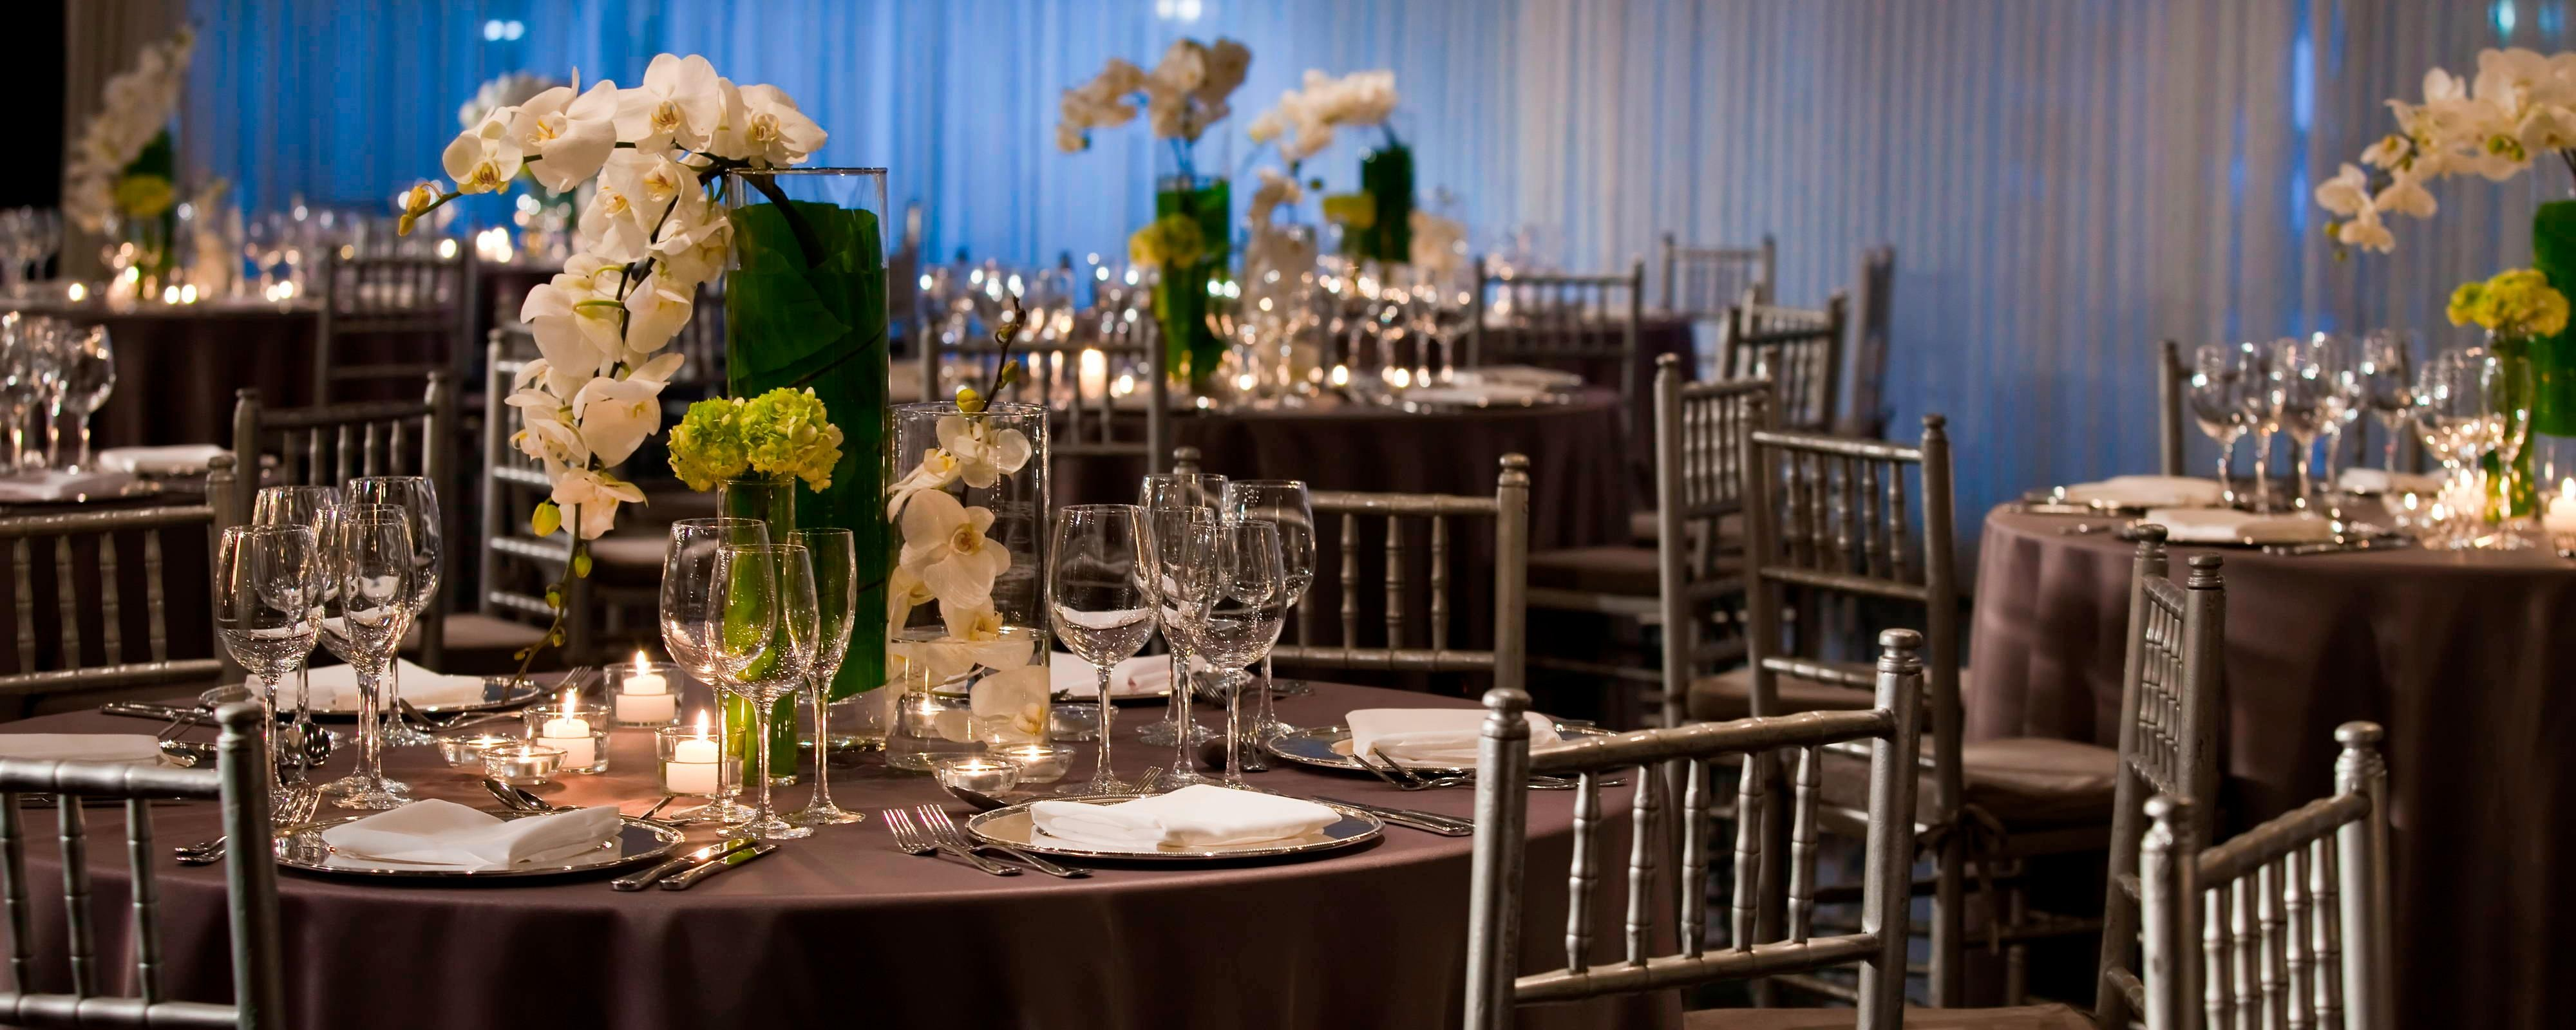 Sao Paulo Brazil Wedding Venues And Packages Renaissance Sao